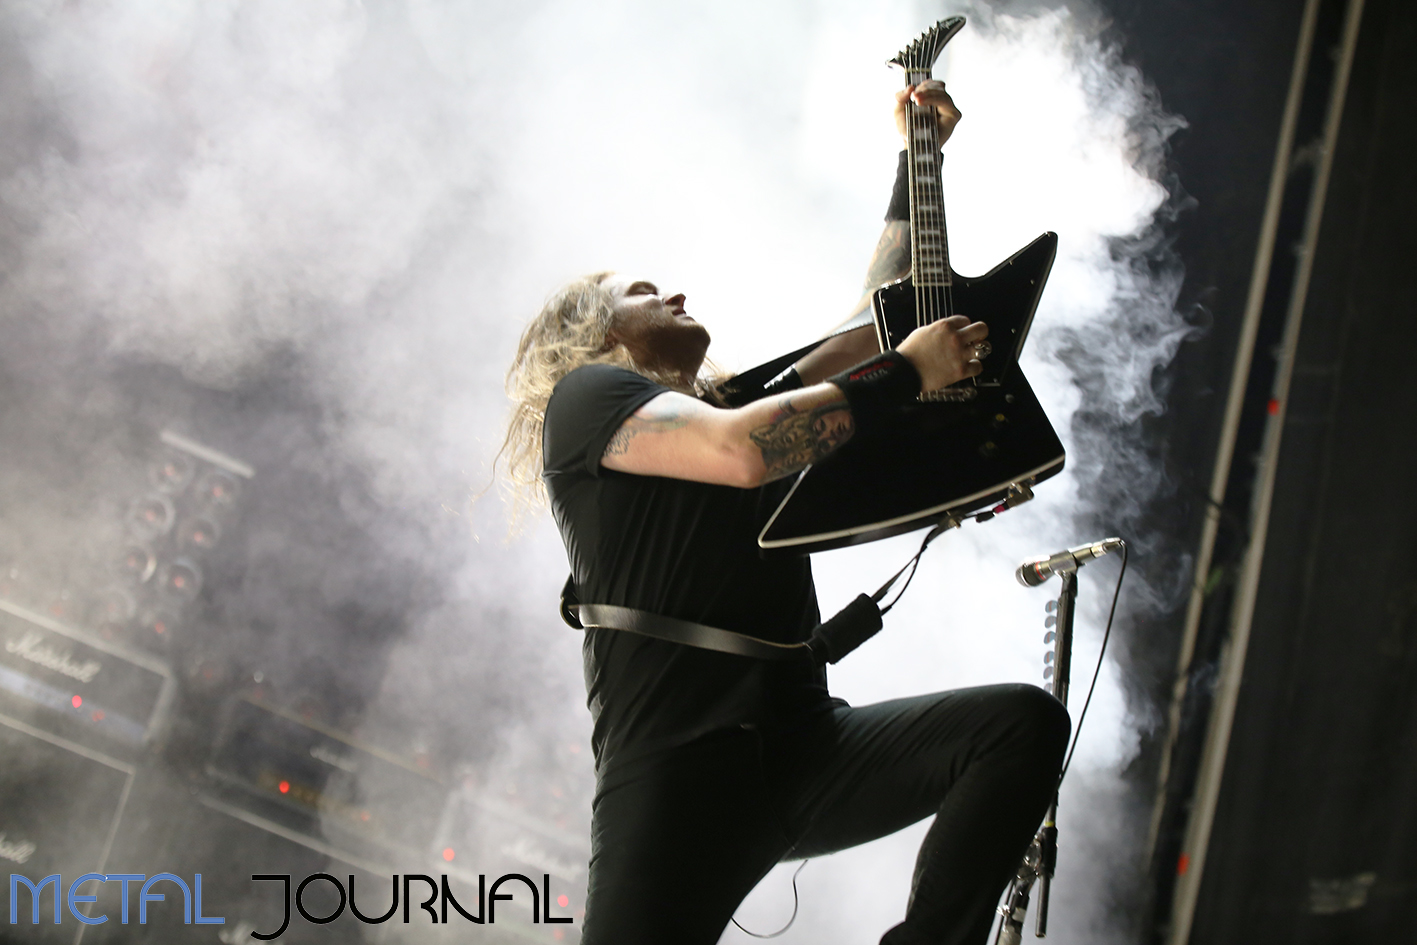 airbourne - leyendas del rock 2019 metal journal pic 12